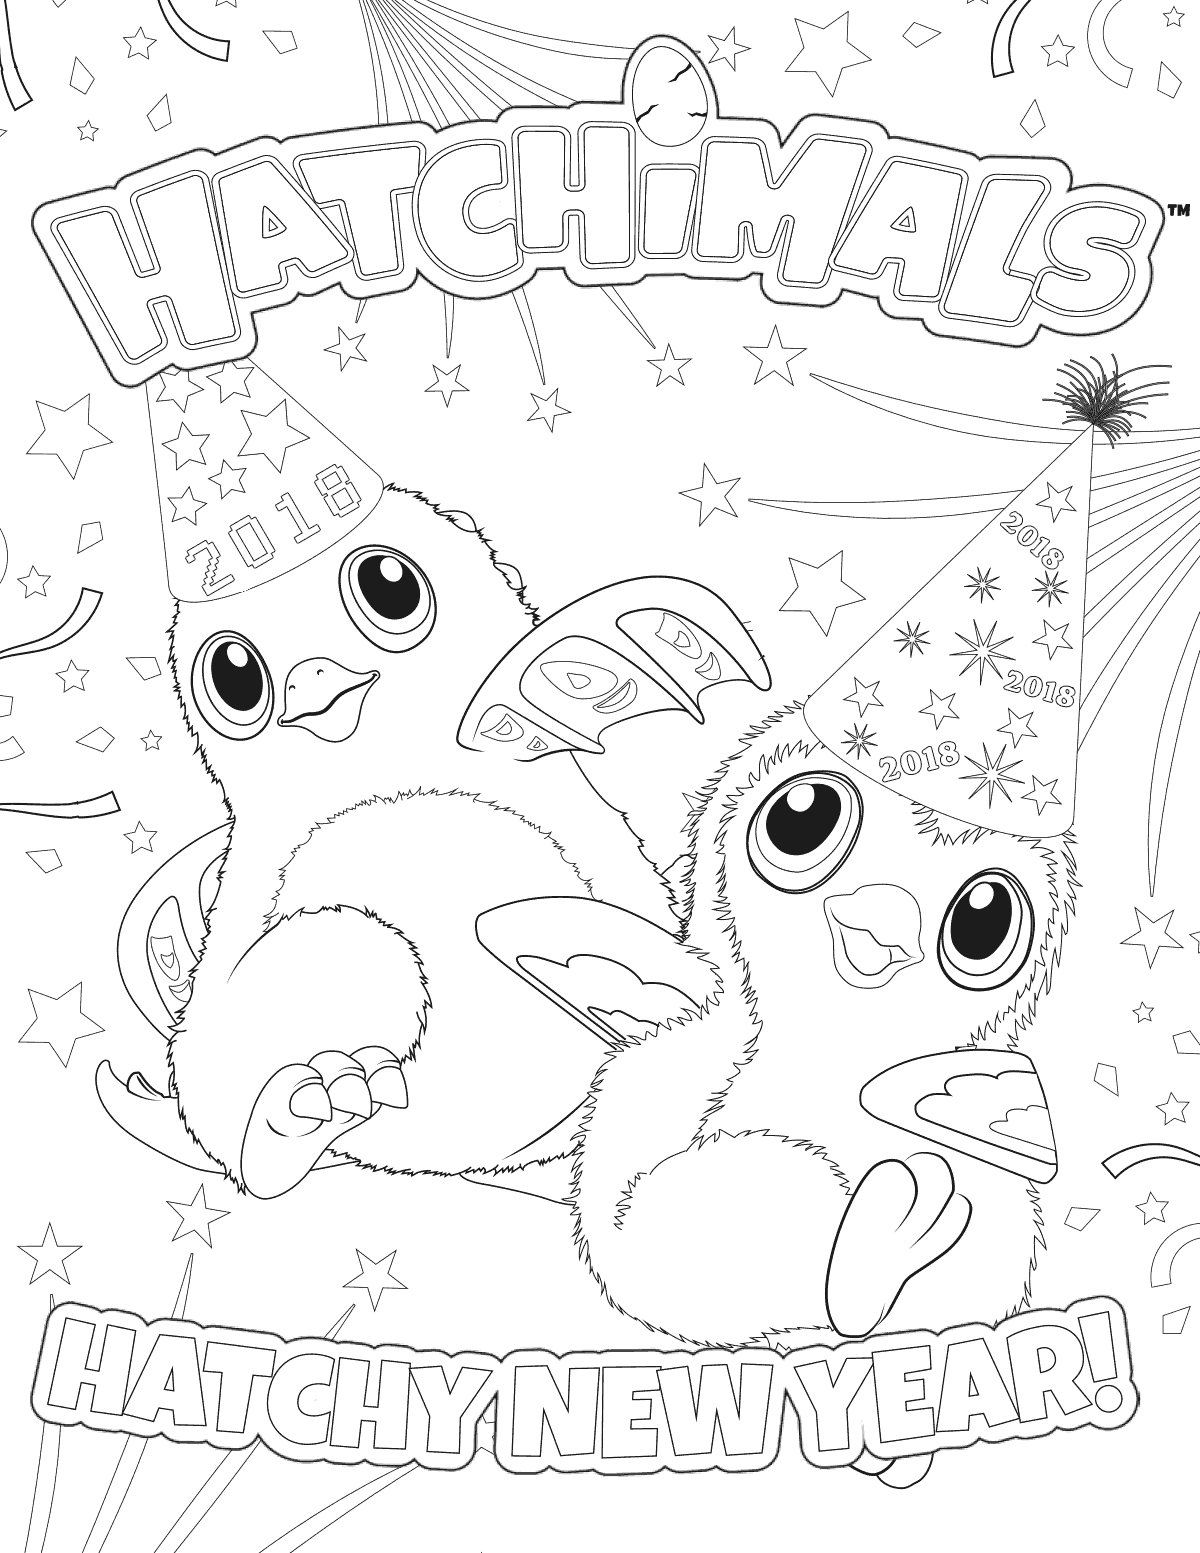 Hatchimals Happy New Year 2018 Coloring Page